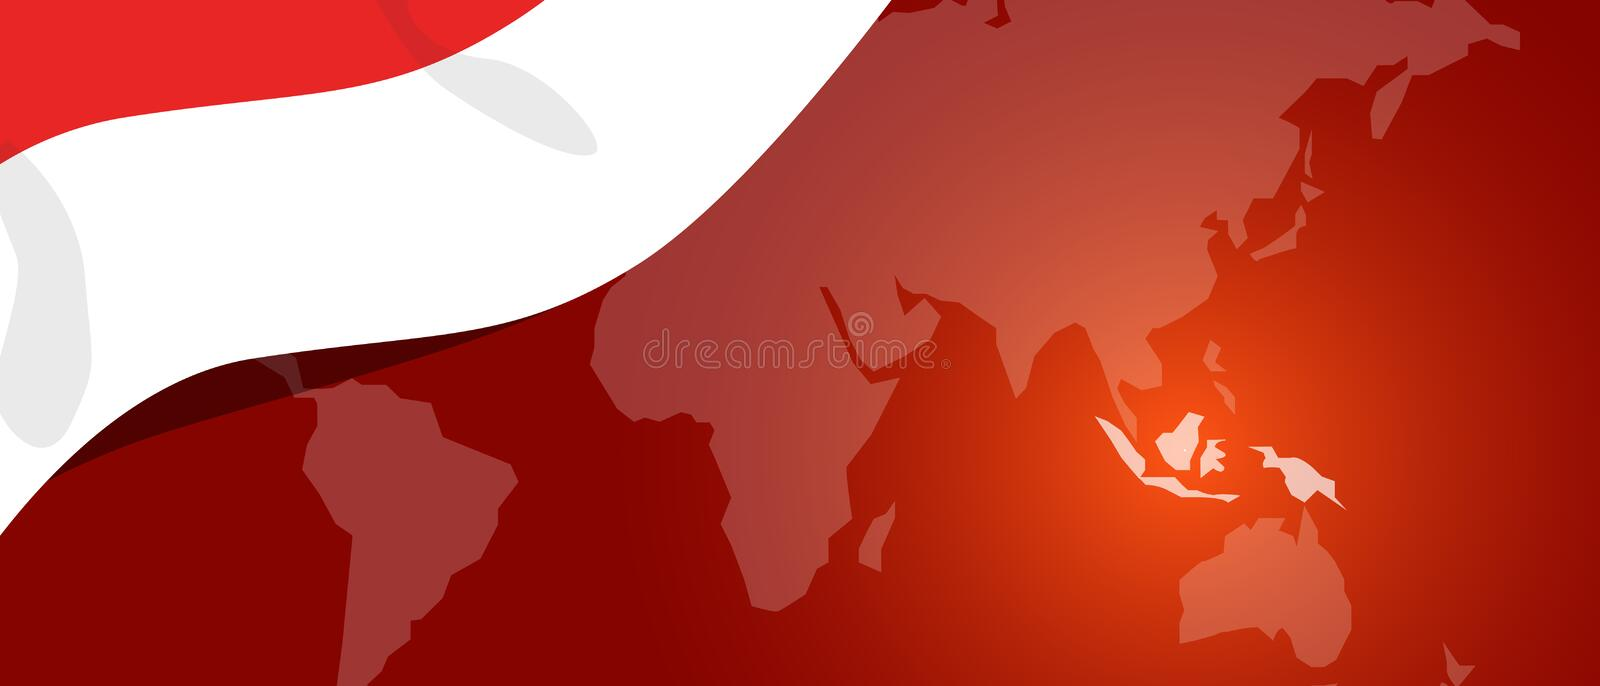 Indonesia map flag world red white location teplate banner download indonesia map flag world red white location teplate banner patriotism stock vector illustration of gumiabroncs Gallery